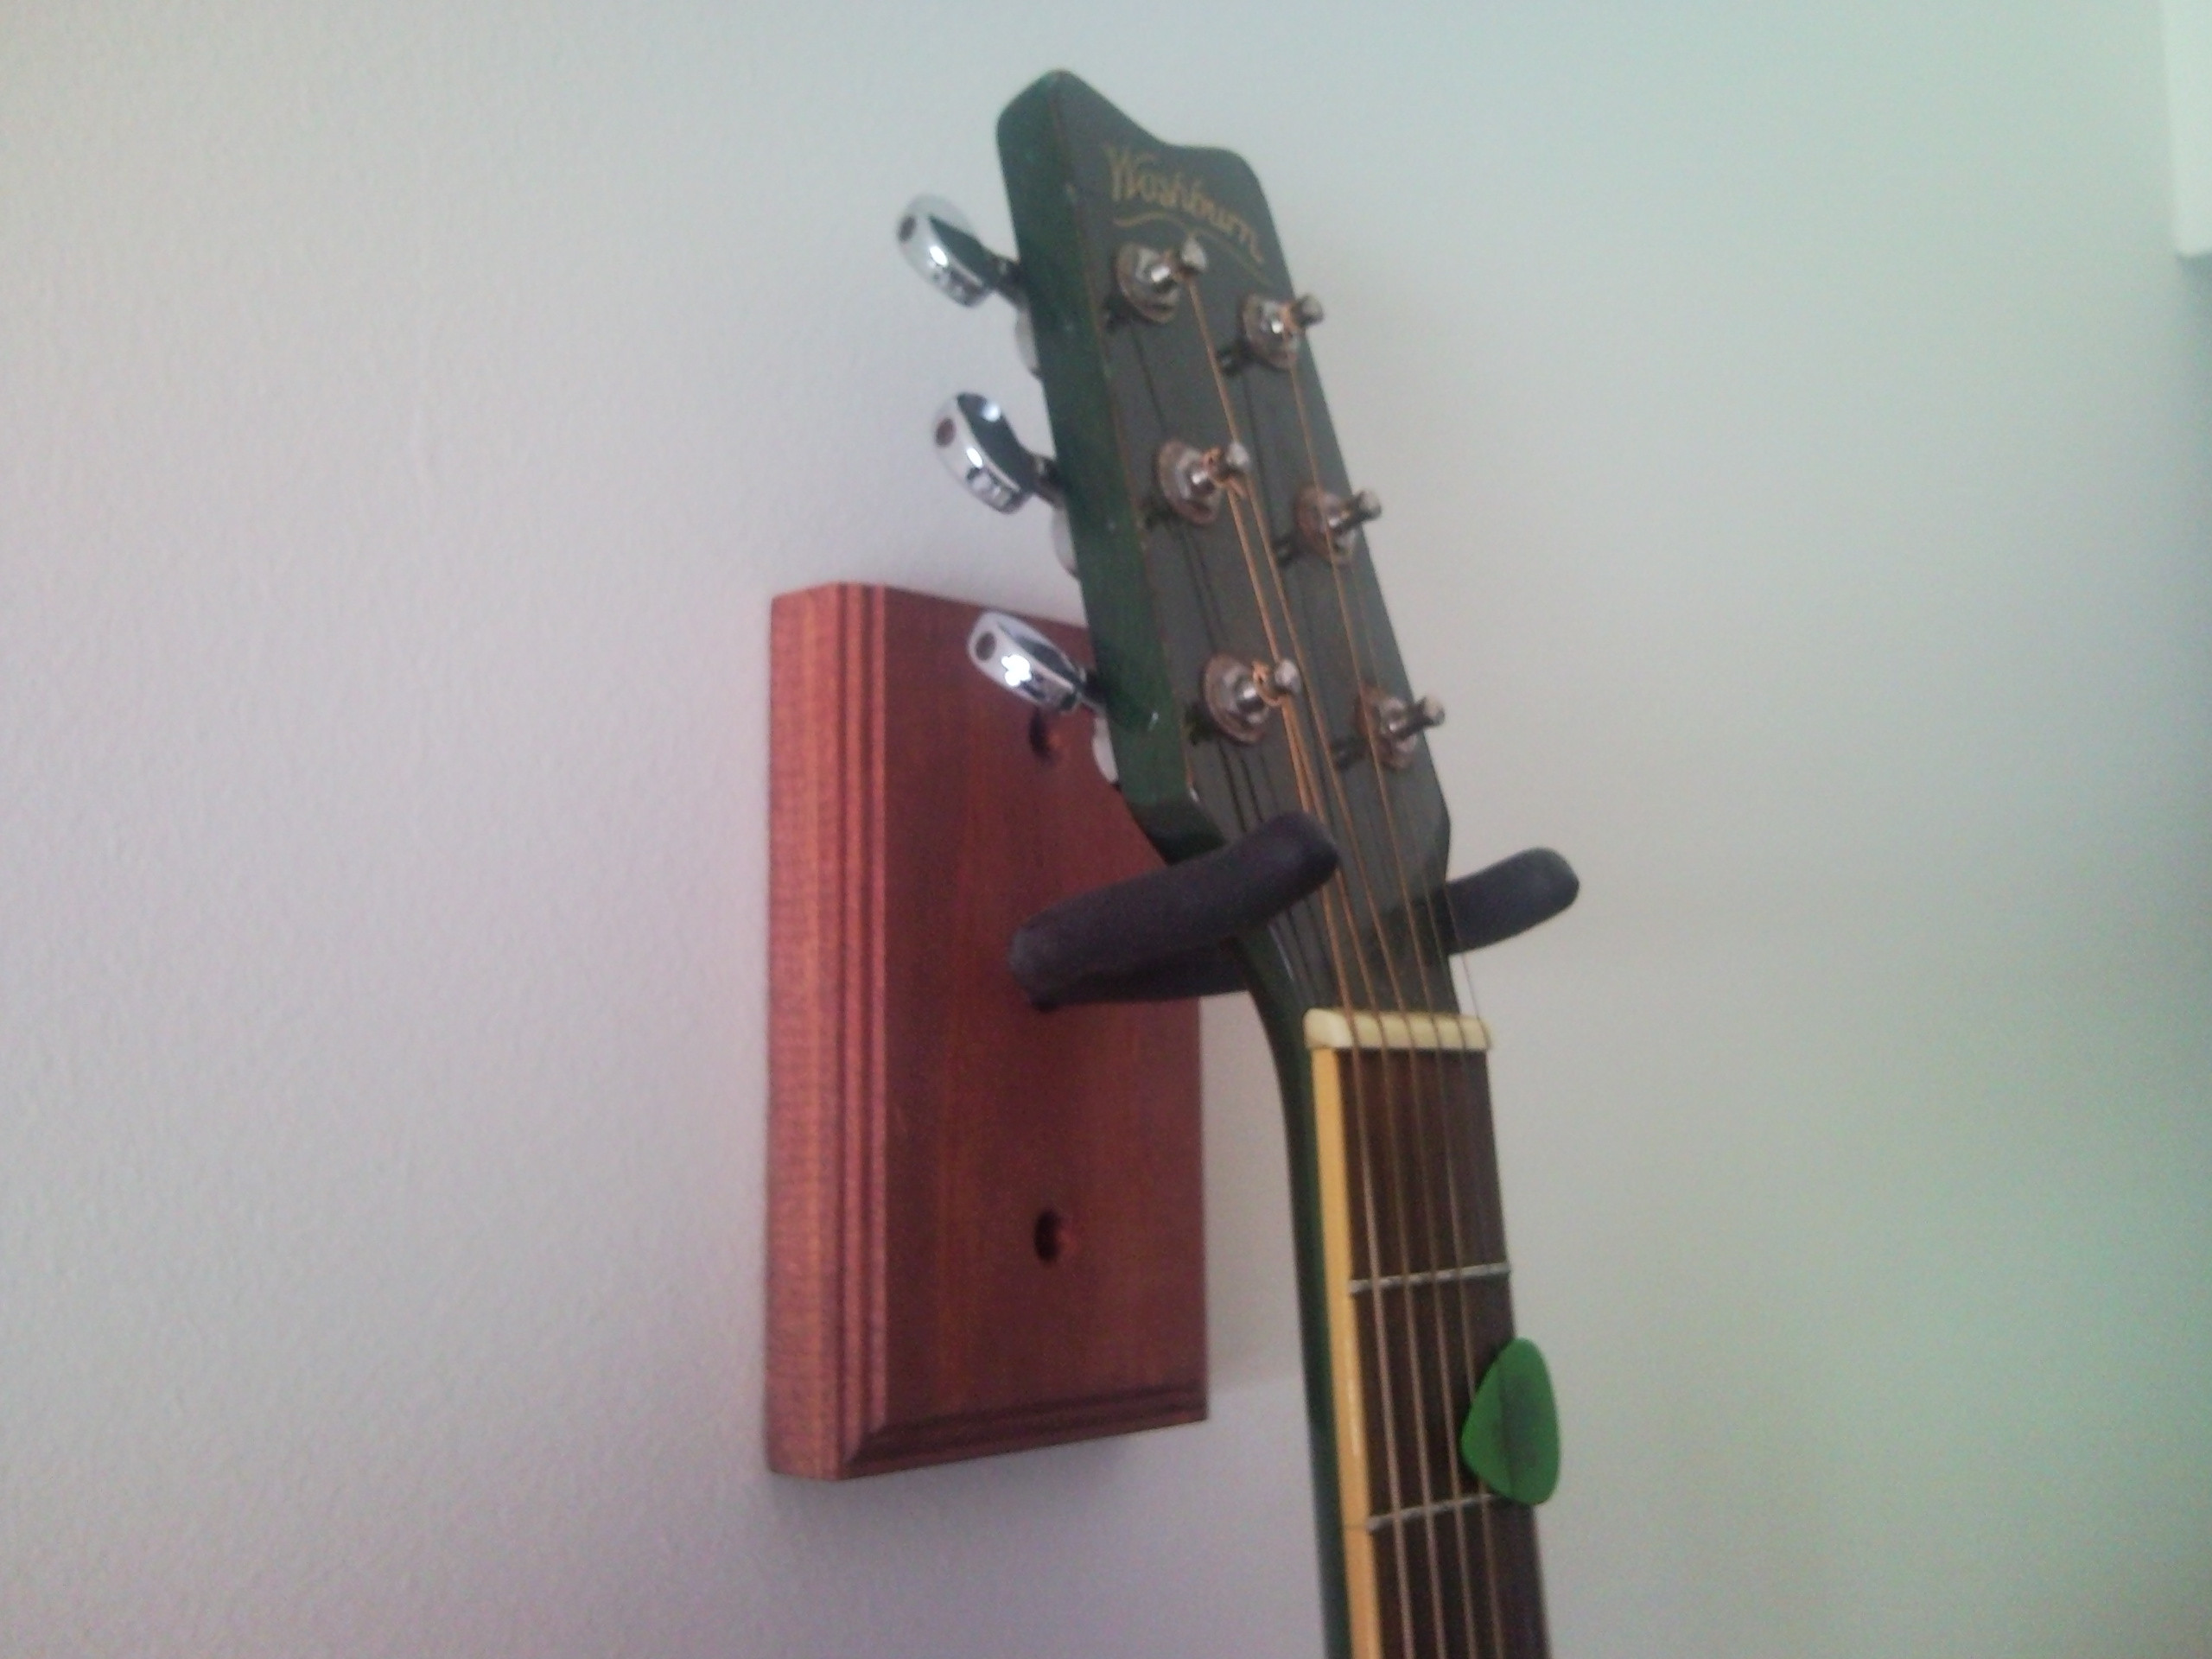 Best ideas about Guitar Wall Hanger DIY . Save or Pin Make Your Own Guitar Wall Mount Now.